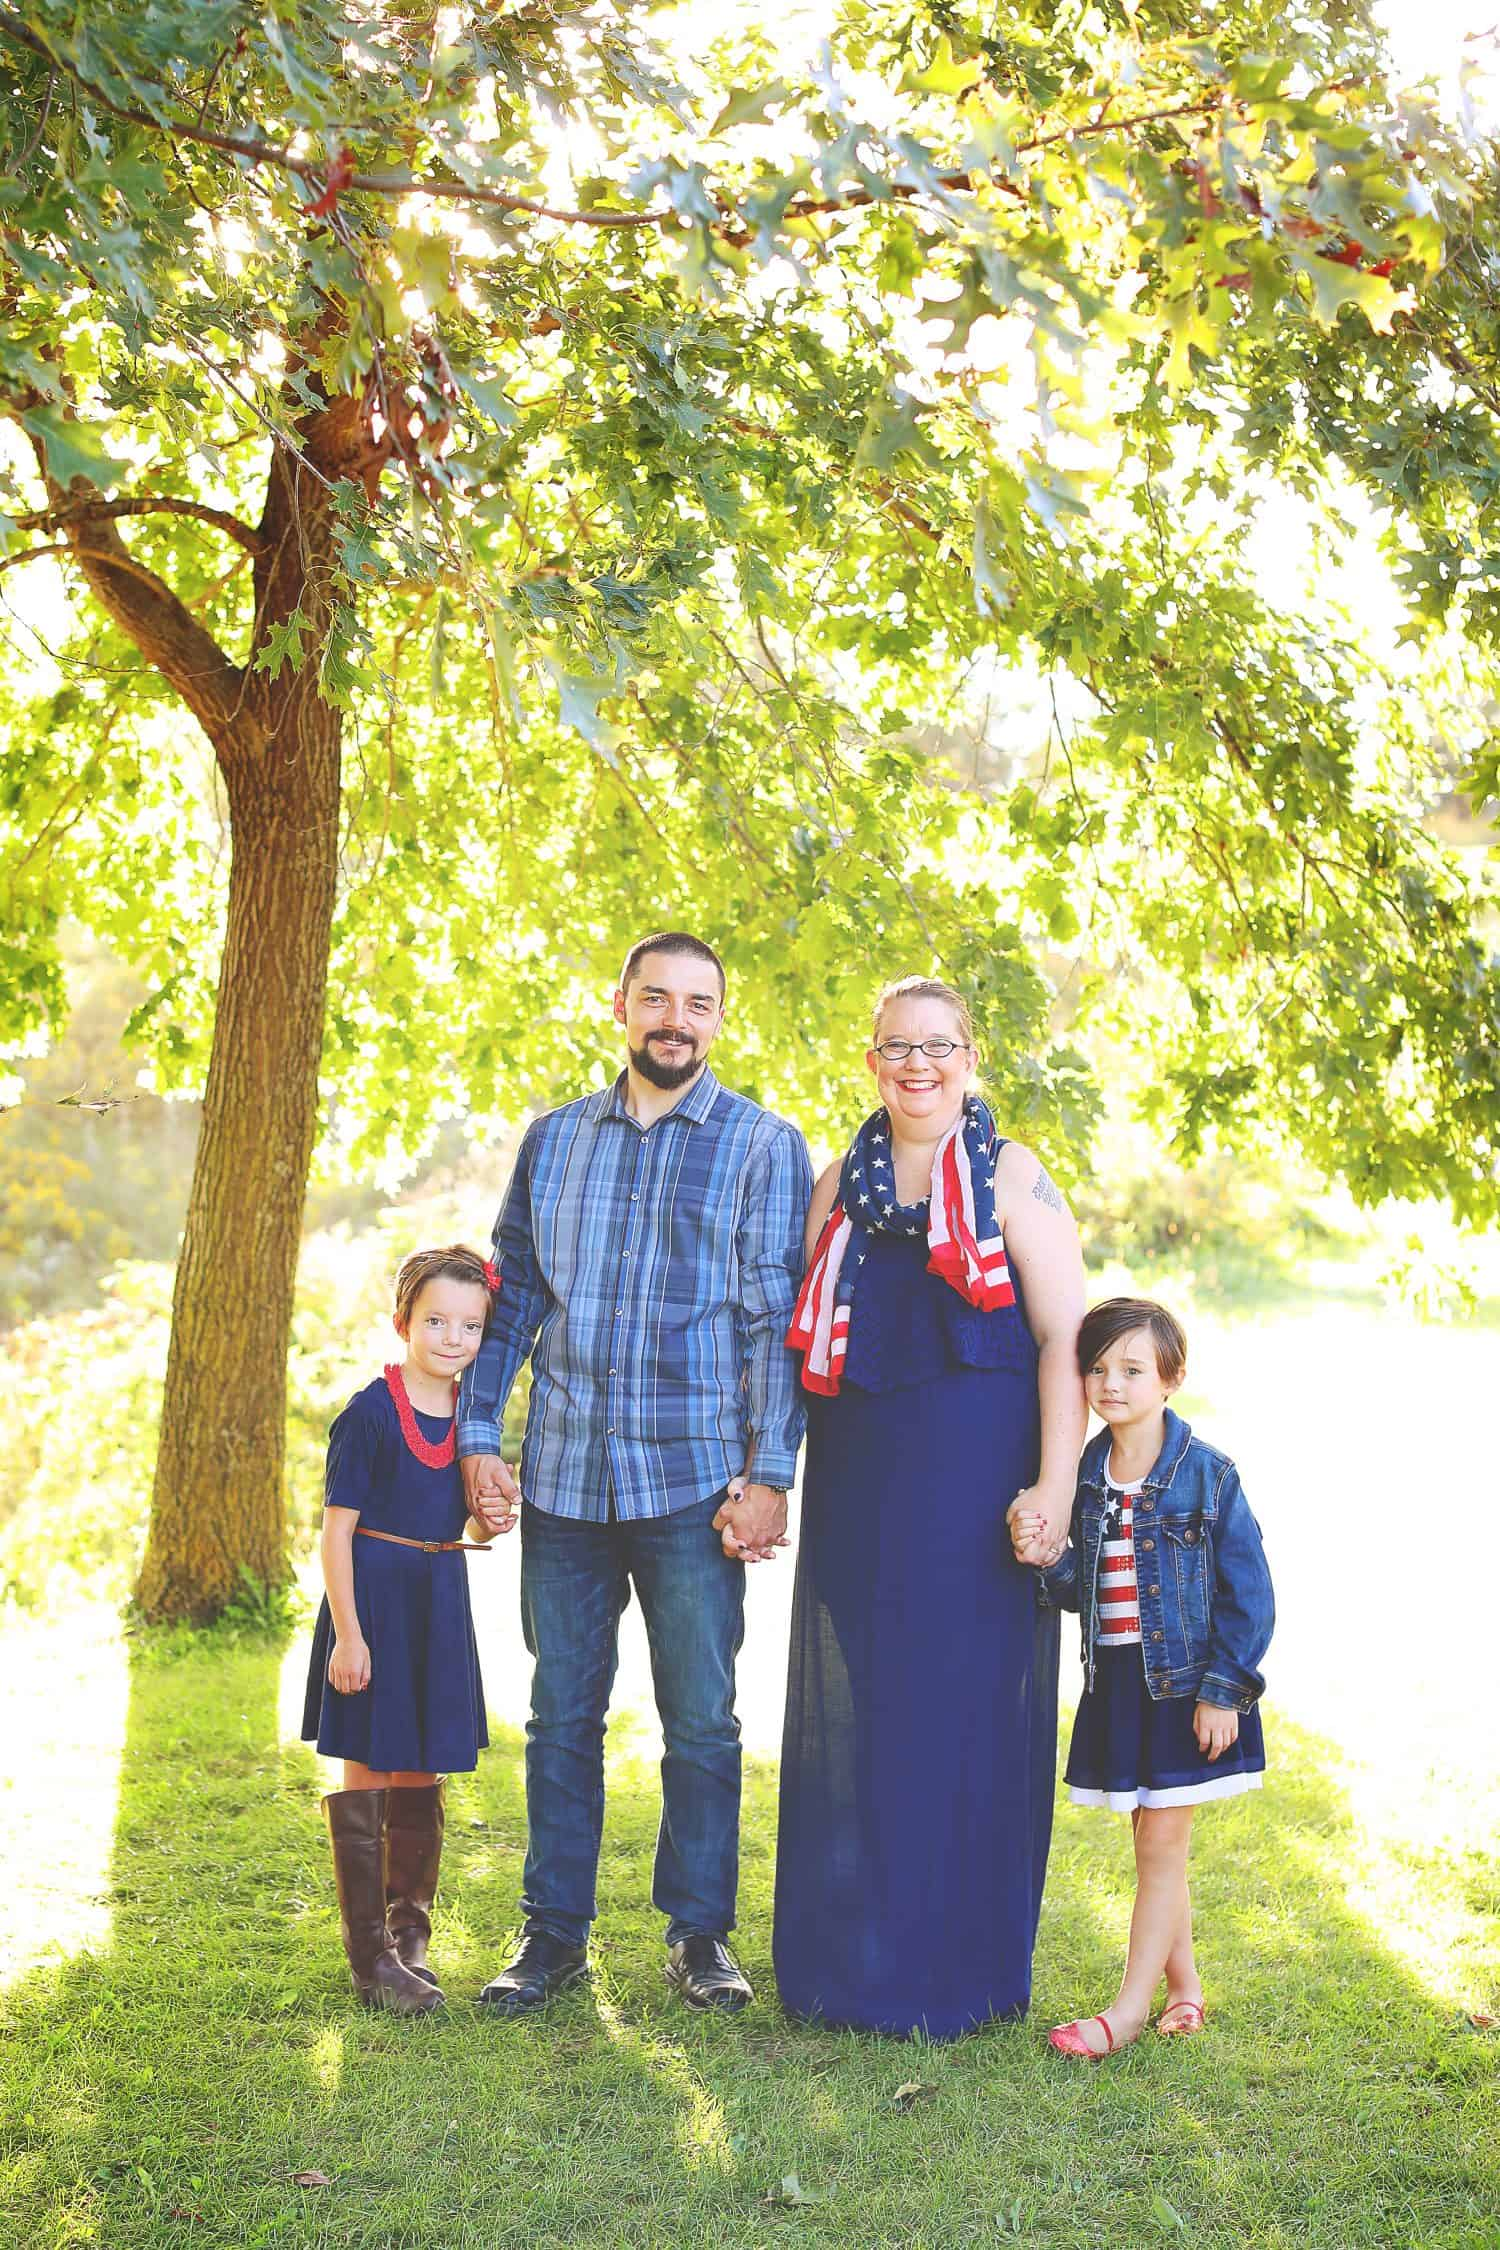 patriotic family pictures taken outdoors